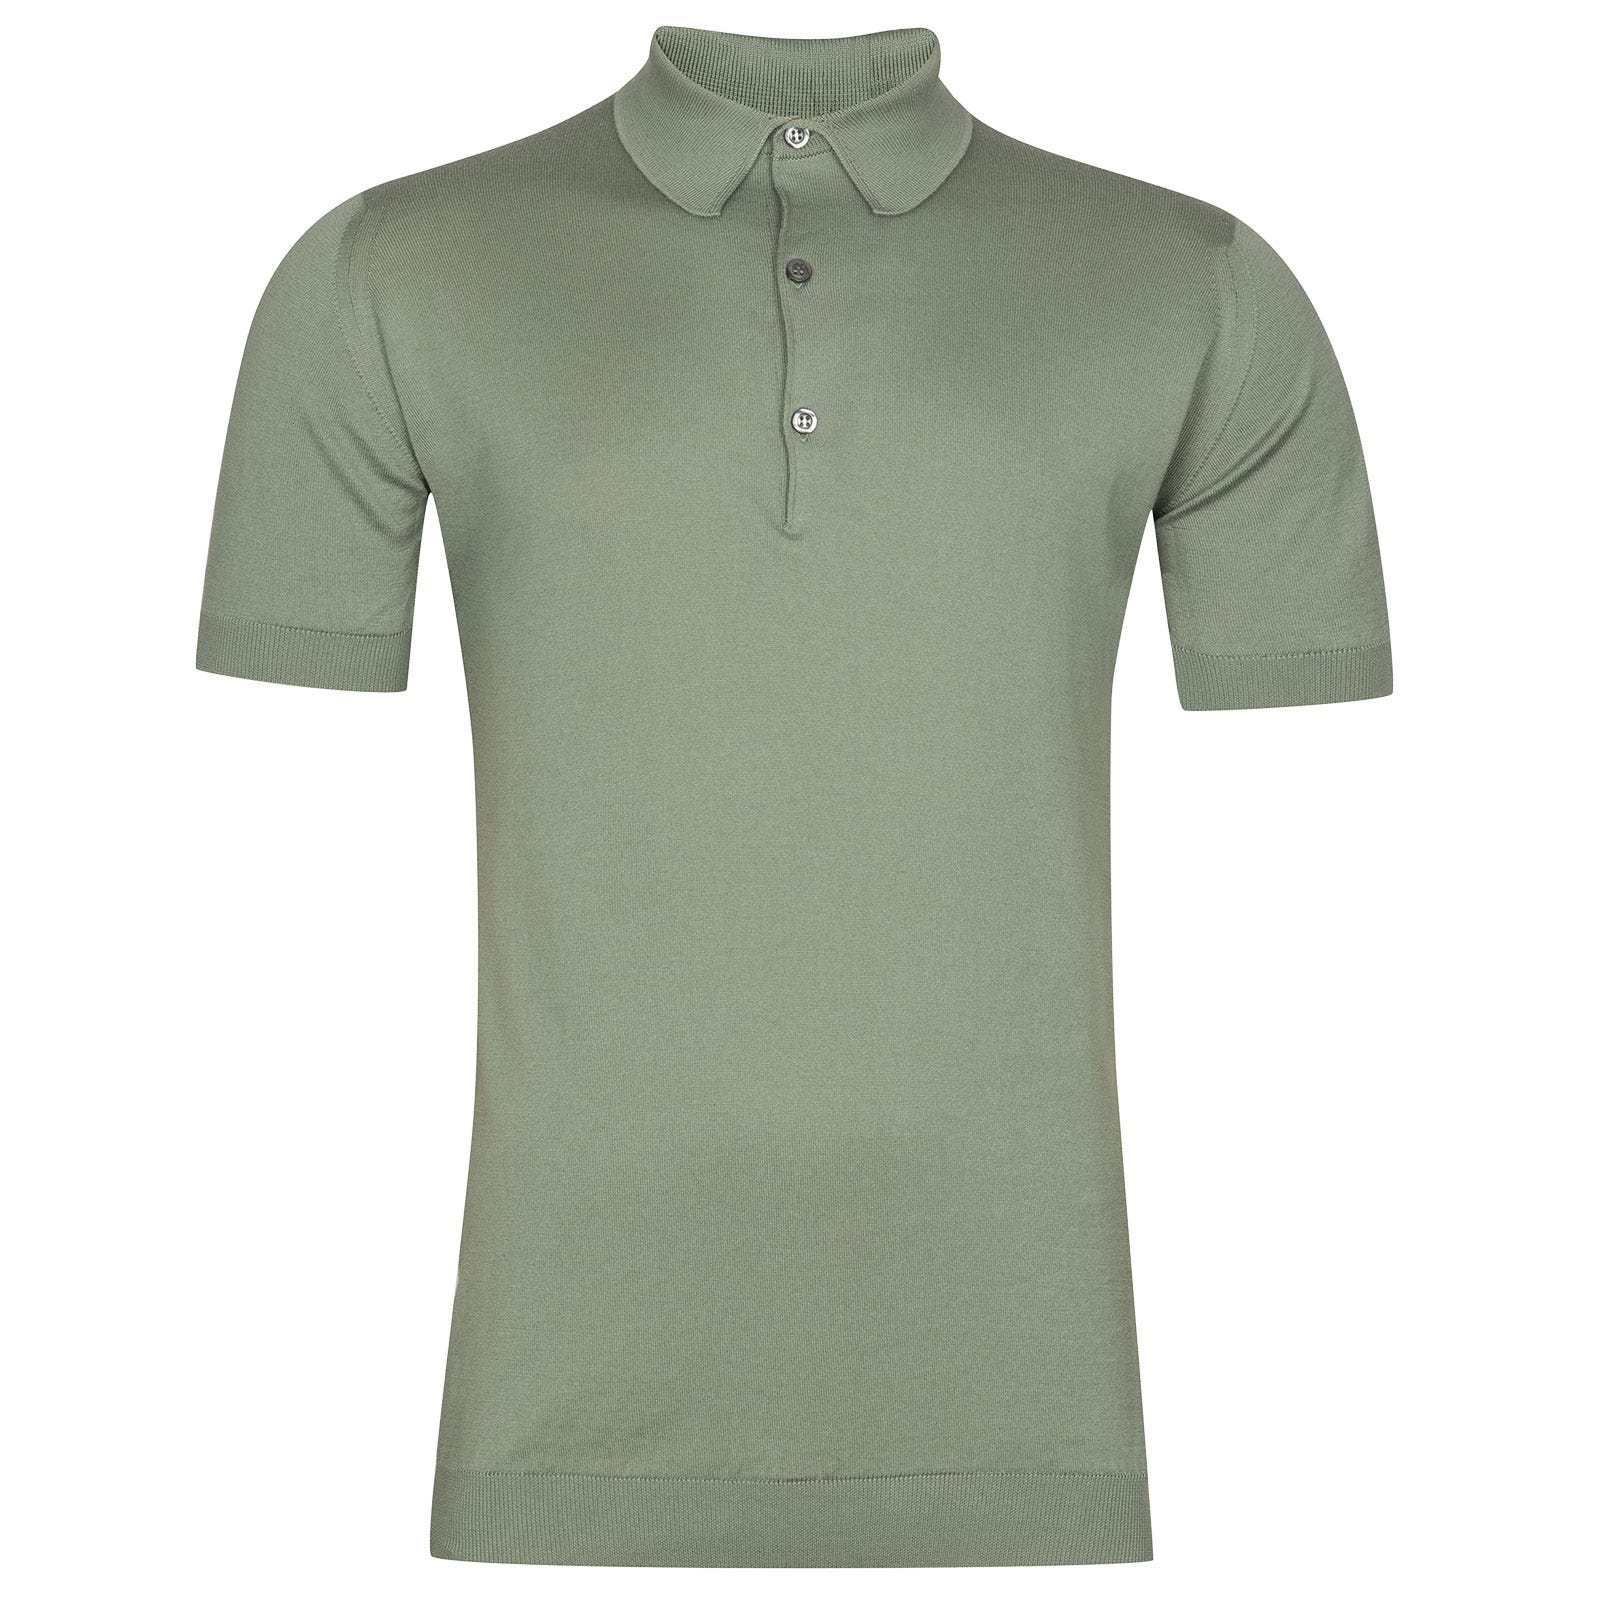 John Smedley Adrian Sea Island Cotton Shirt in Gauge Green-S